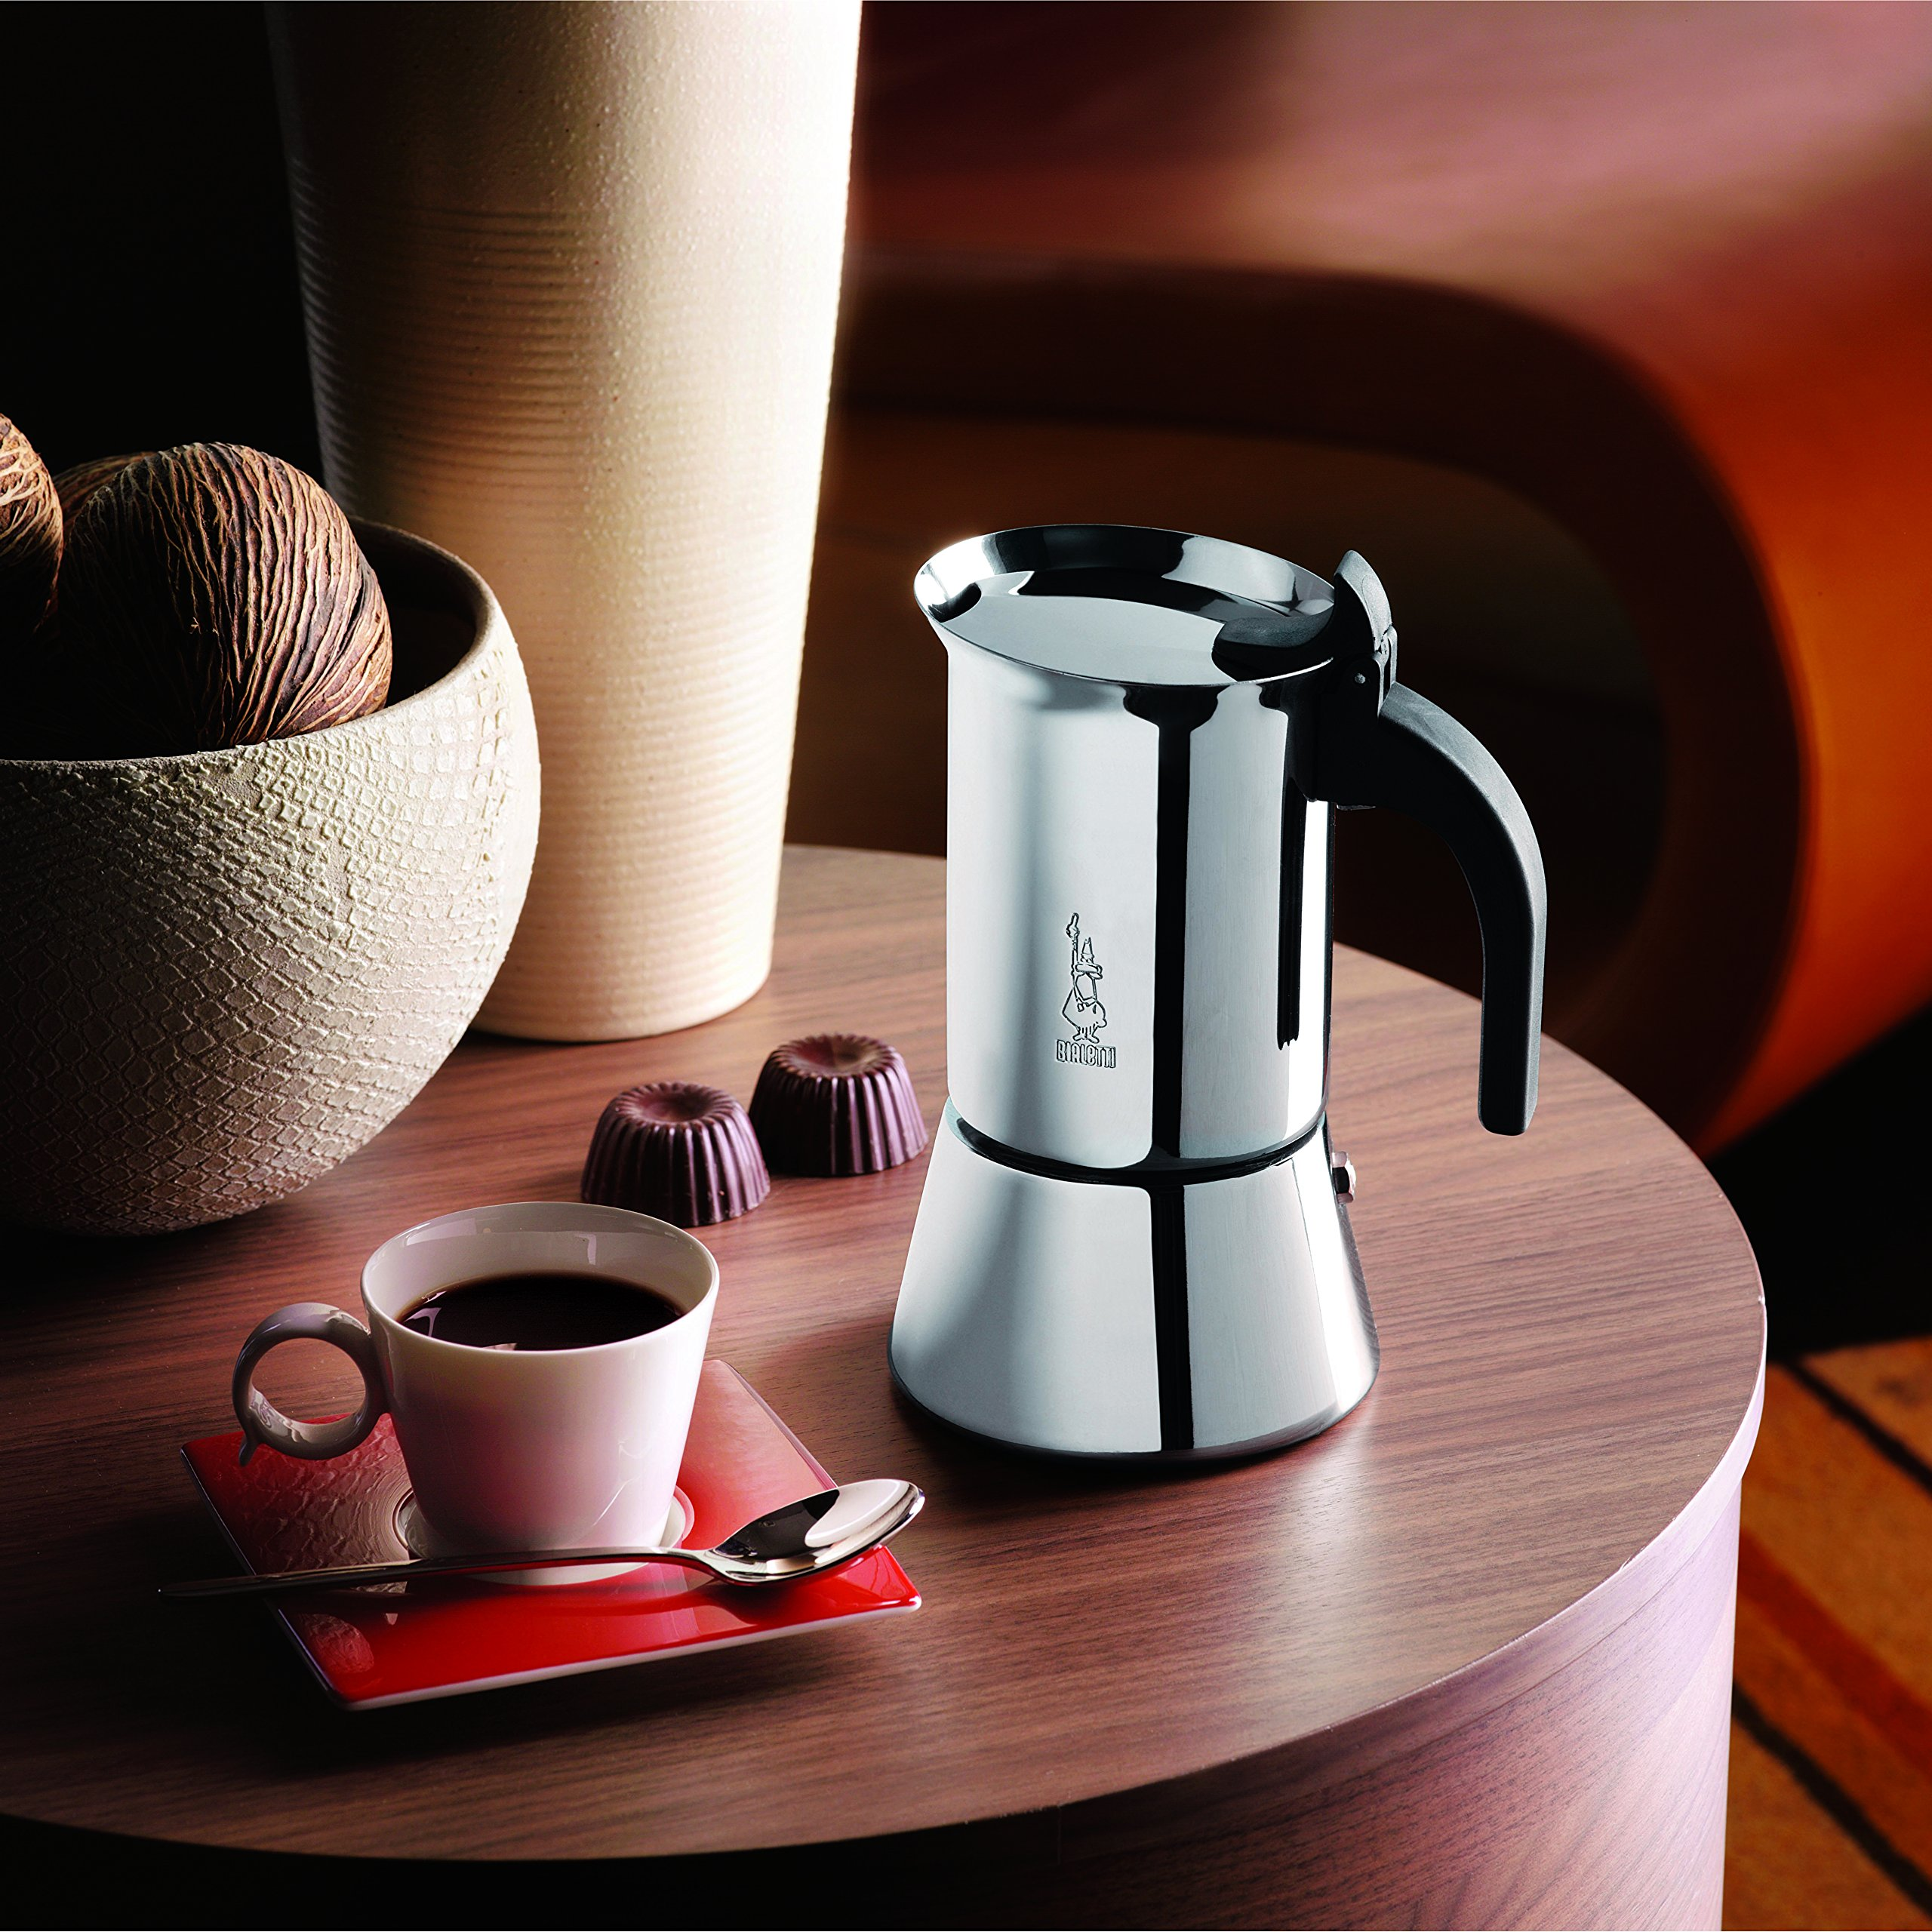 Venus Induction Capable Espresso Coffee Maker, Stainless Steel, 4 cup by Bialetti (Image #2)